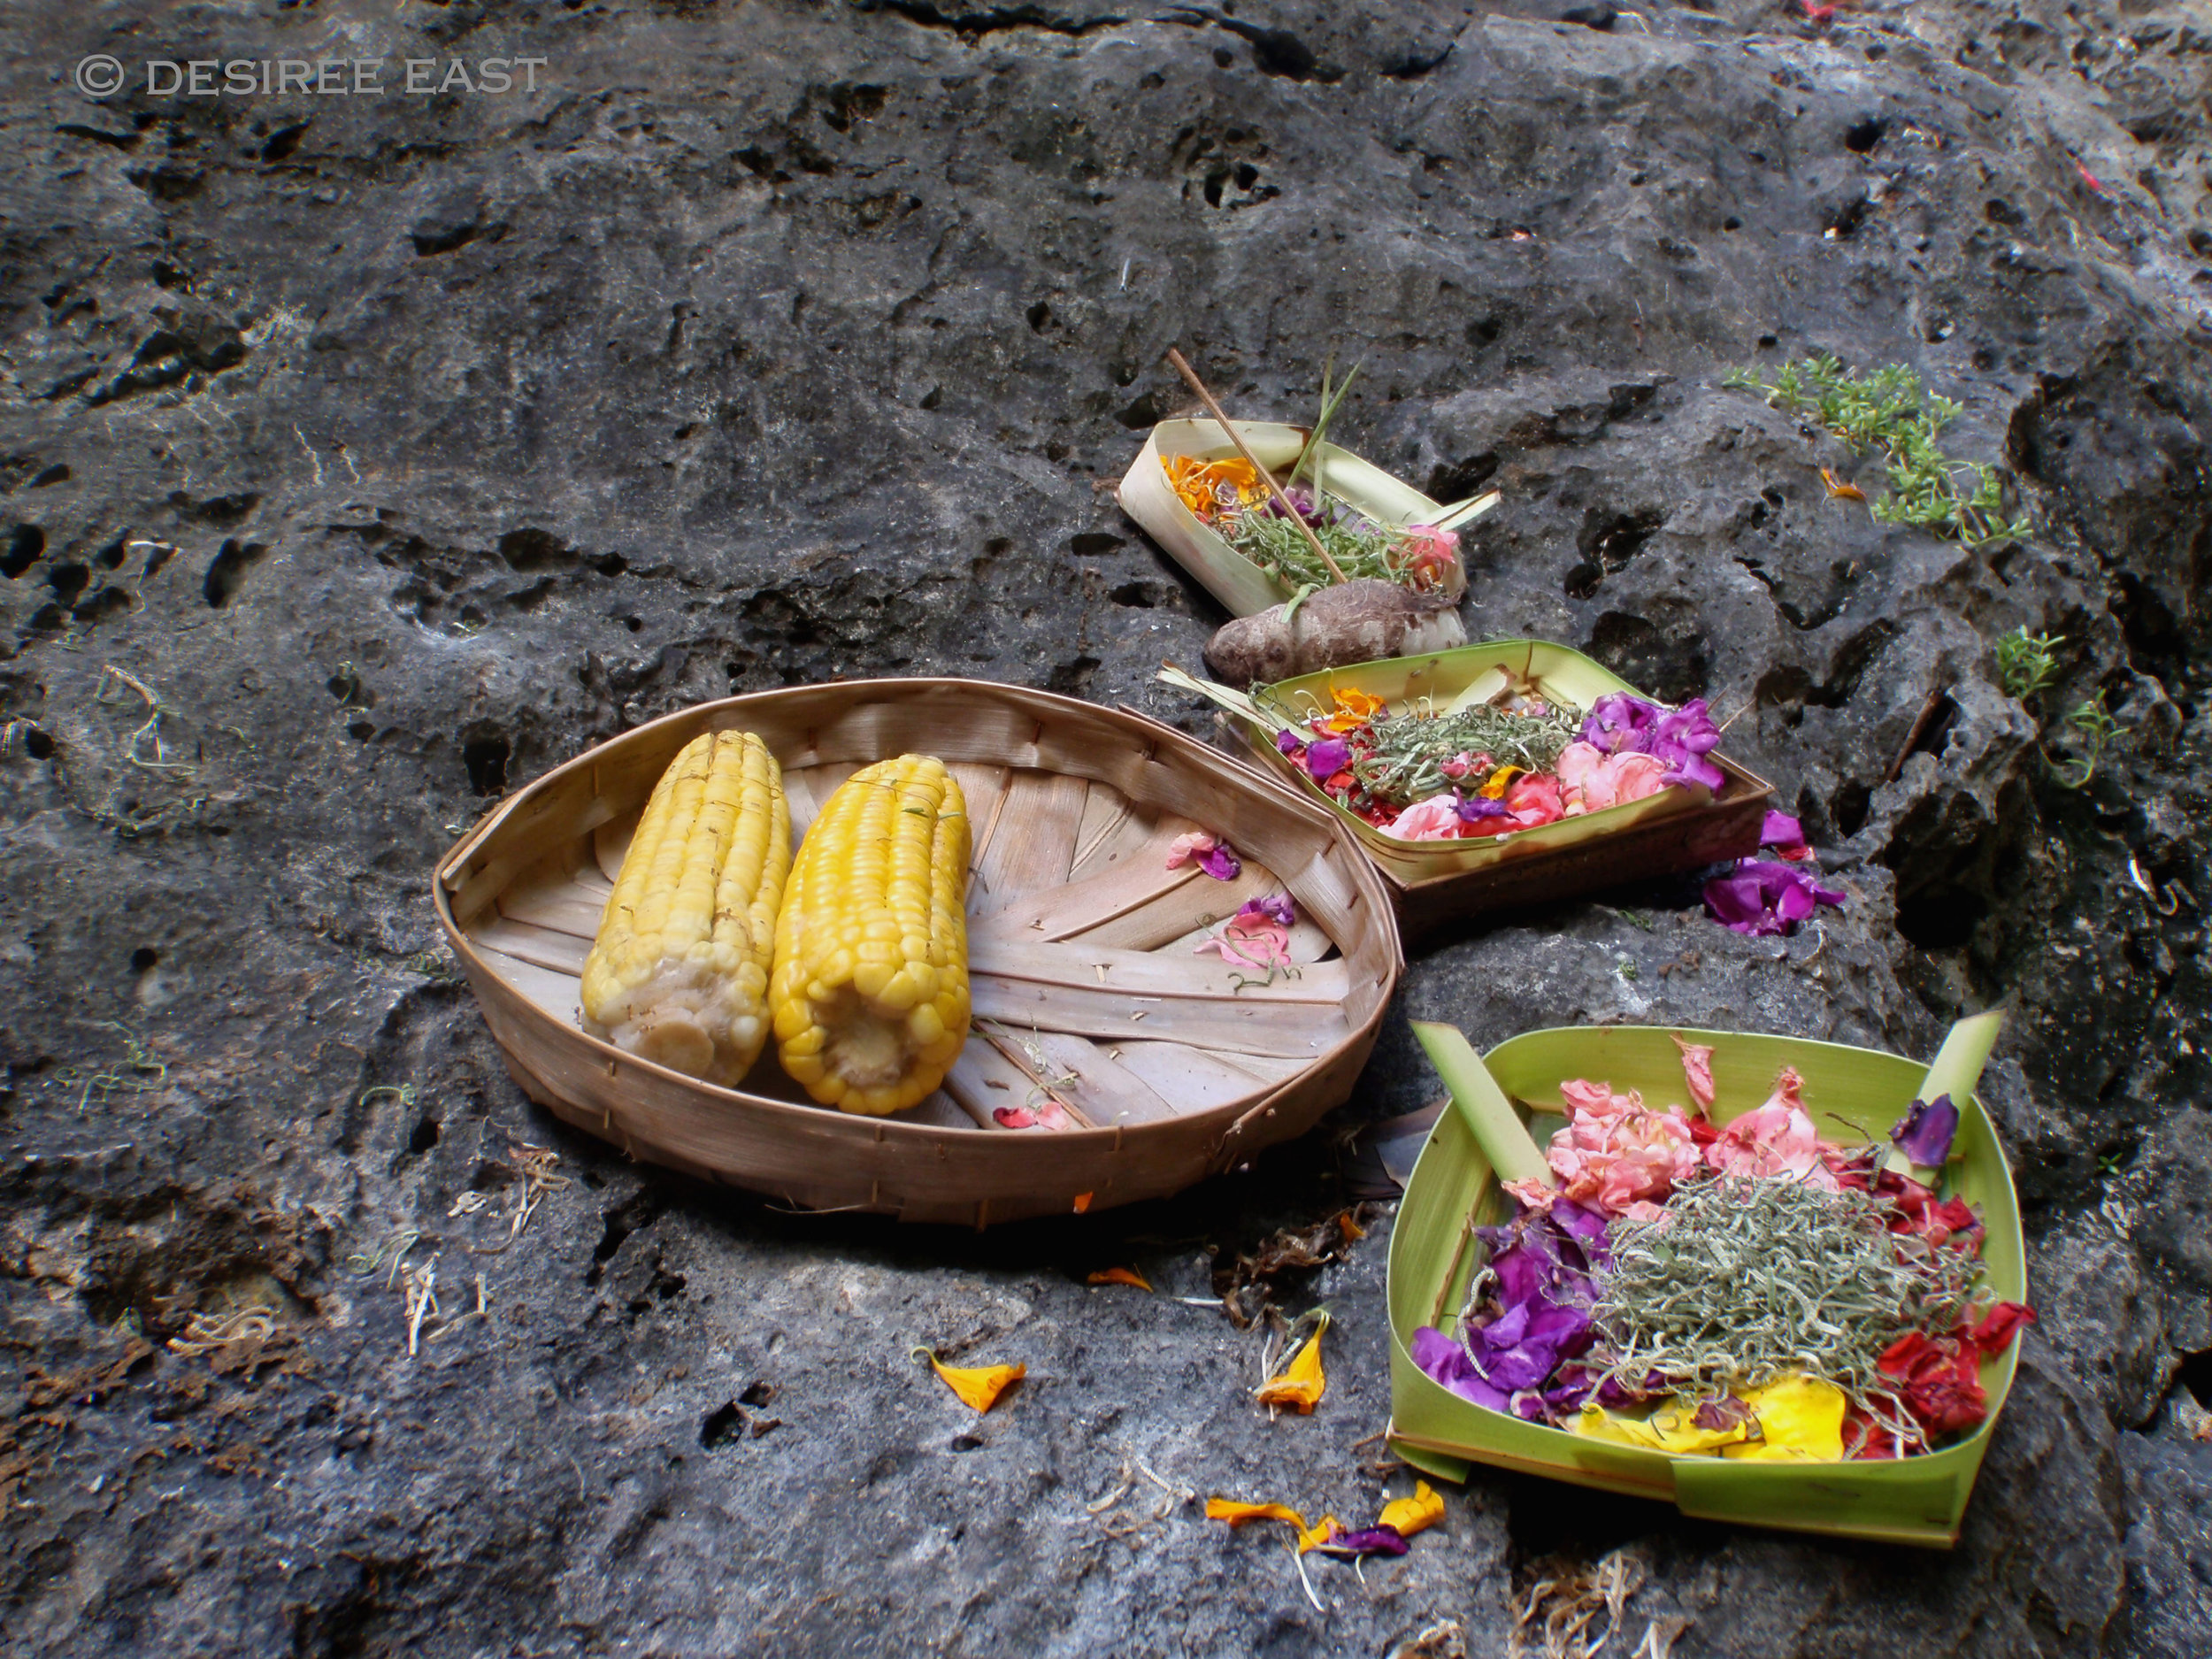 balinese offerings on lava rock. photo by desiree east